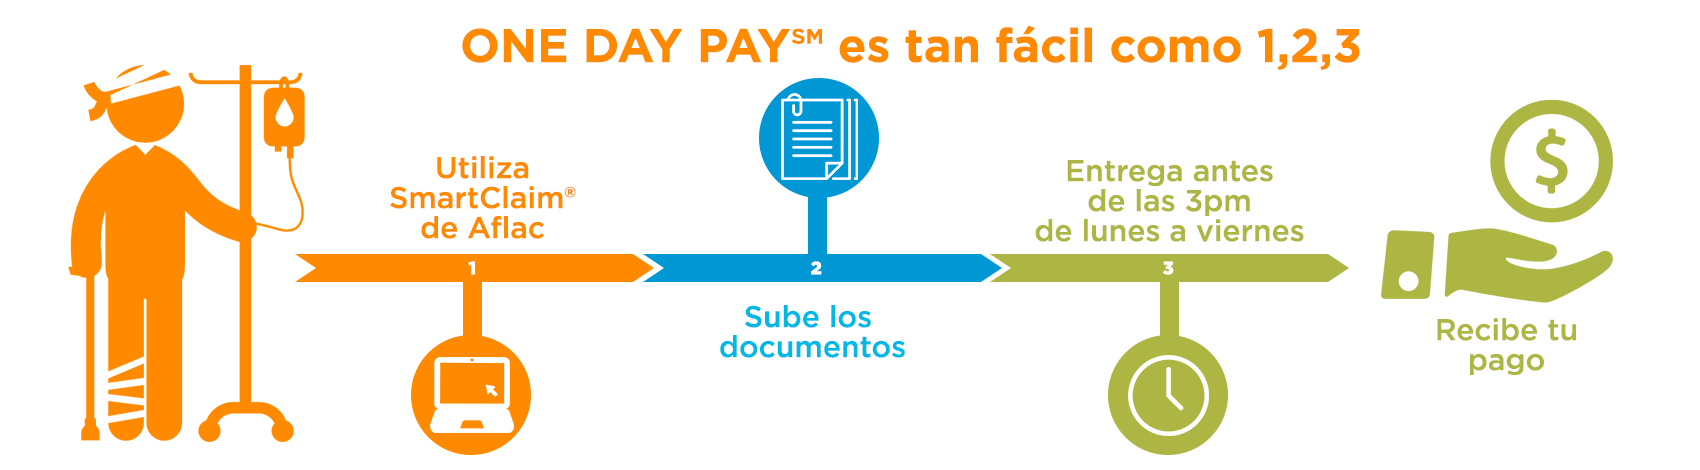 One Day Pay